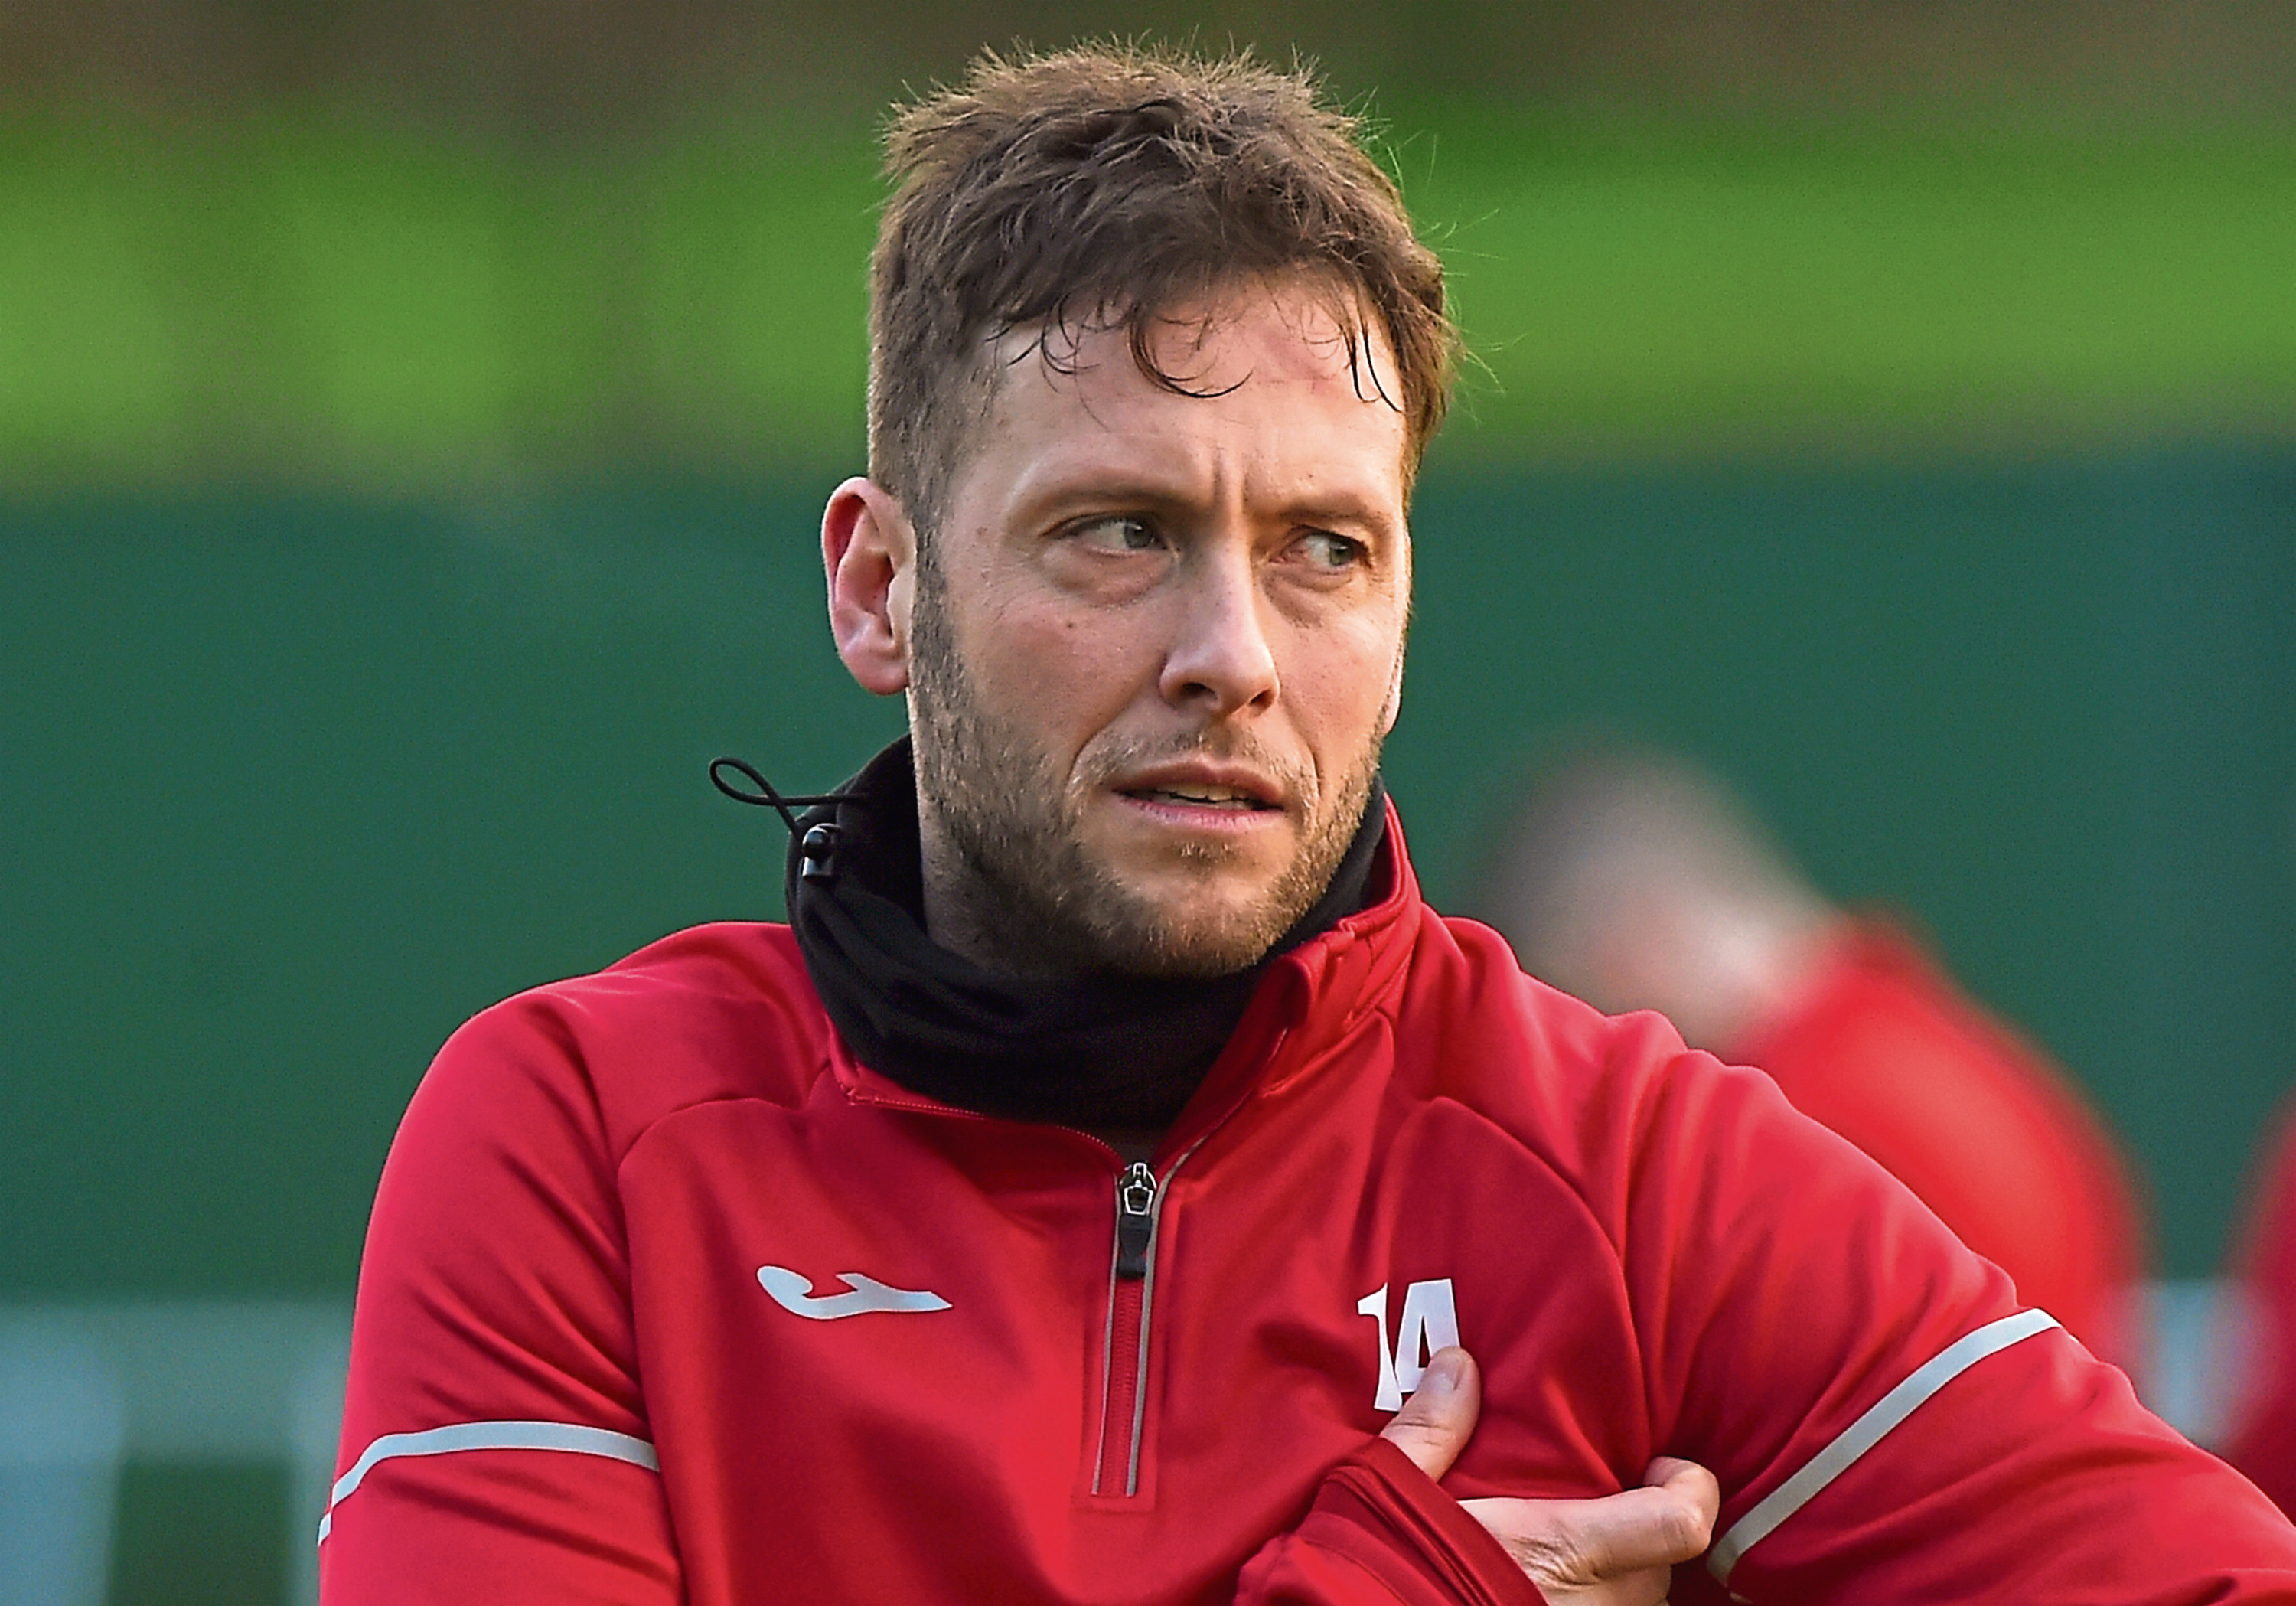 Formartine United manager Paul Lawson Picture by KENNY ELRICk